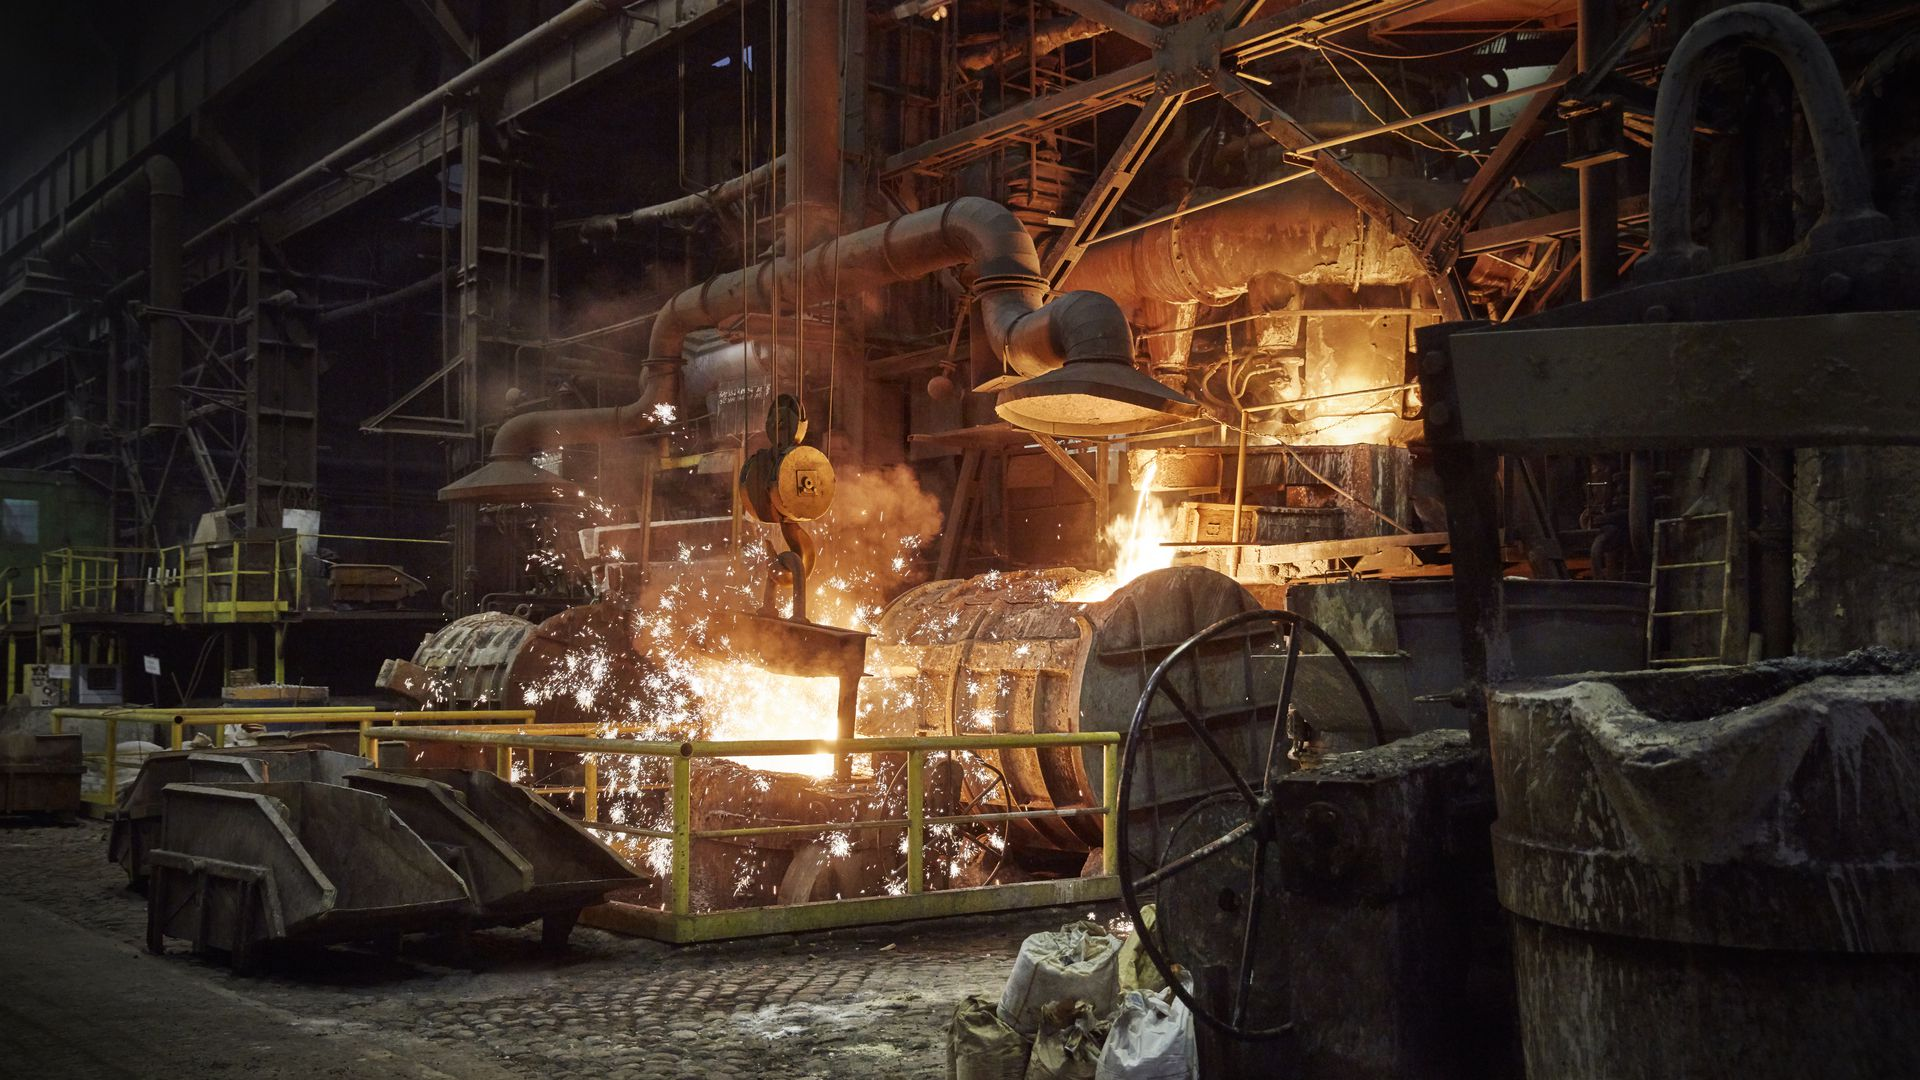 Report: Trump's steel tariffs are costing Americans $900,000 per job created